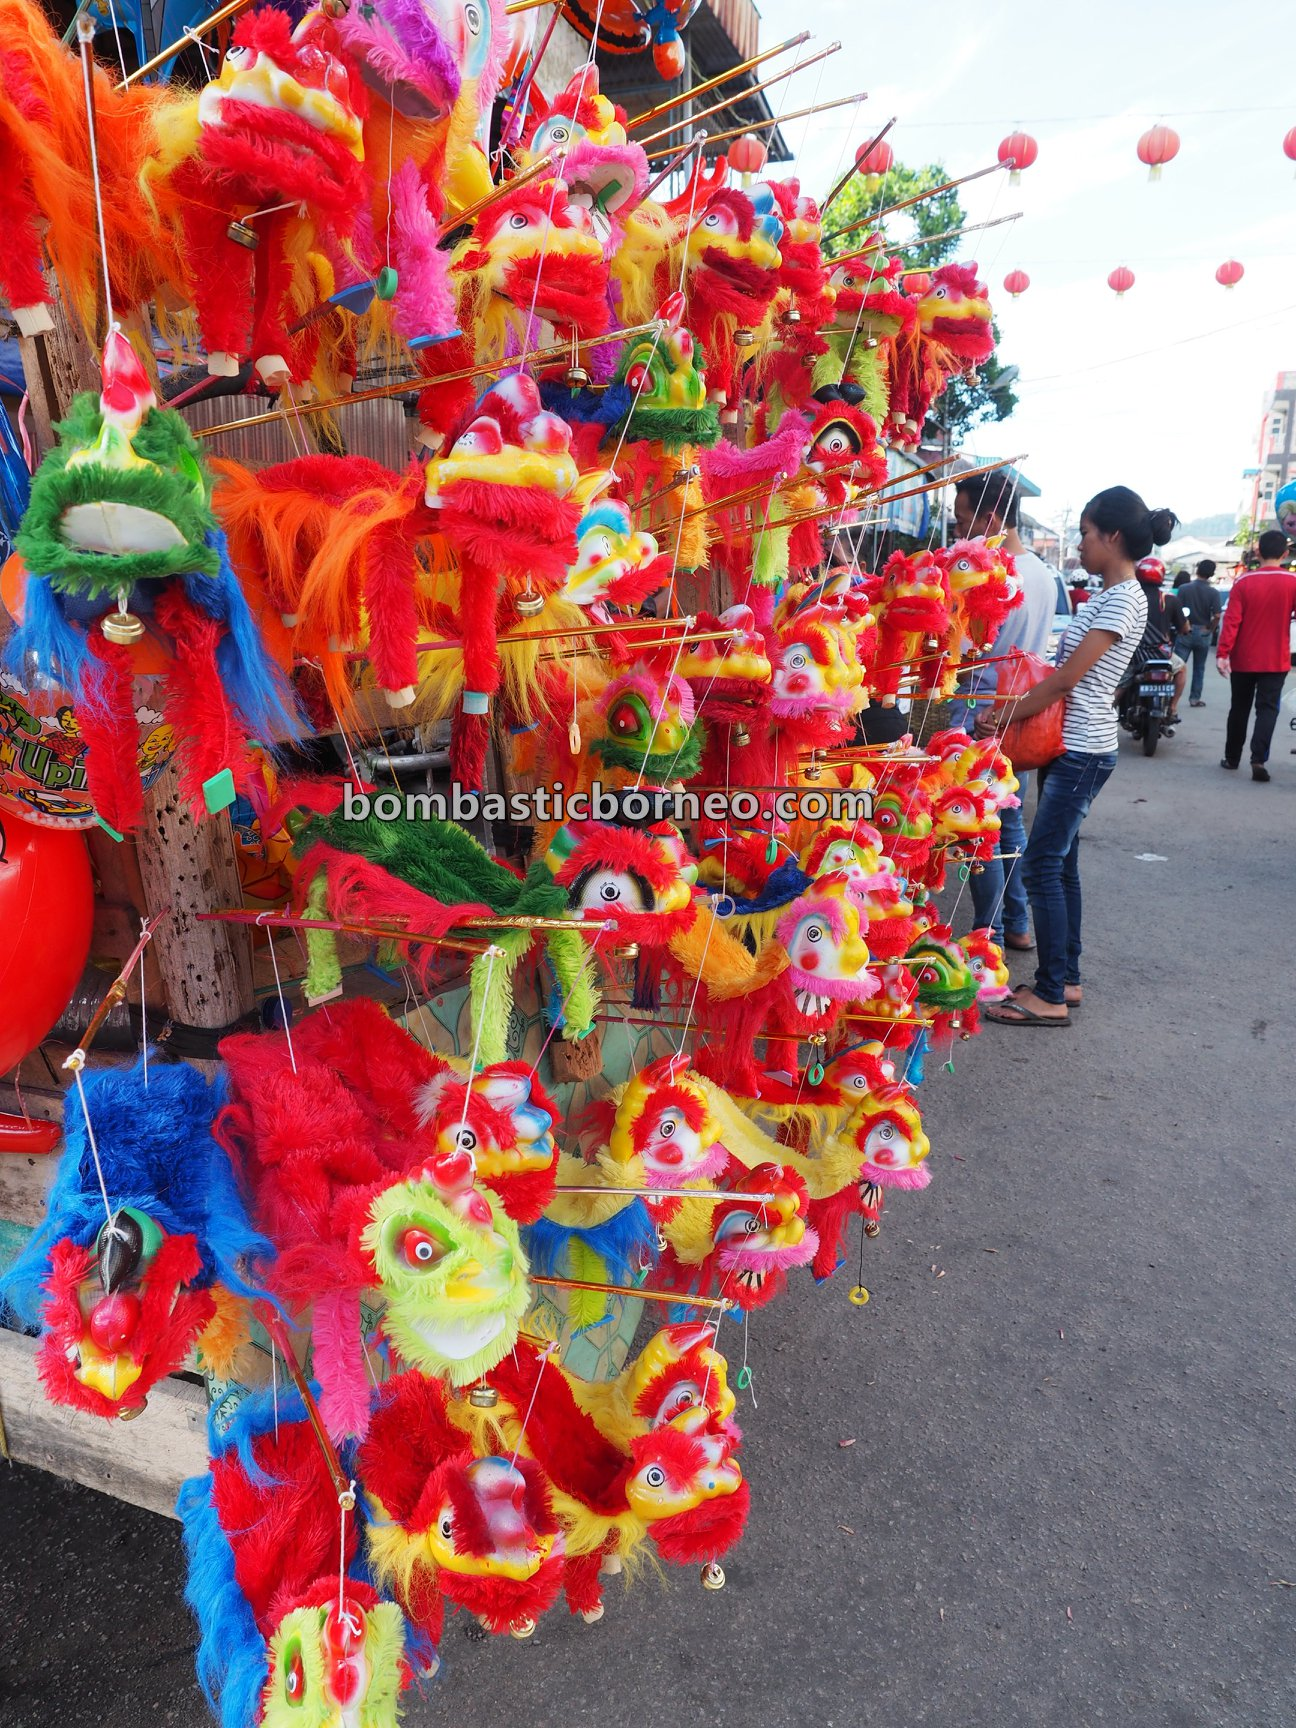 tradisional, budaya, culture, Chinese New Year, backpackers, Ethnic, TiongHoa, Obyek wisata, Tourism, travel guide, Trans Border, Borneo, 印尼 华人文化, 西加里曼丹山口洋, 客家农历新年